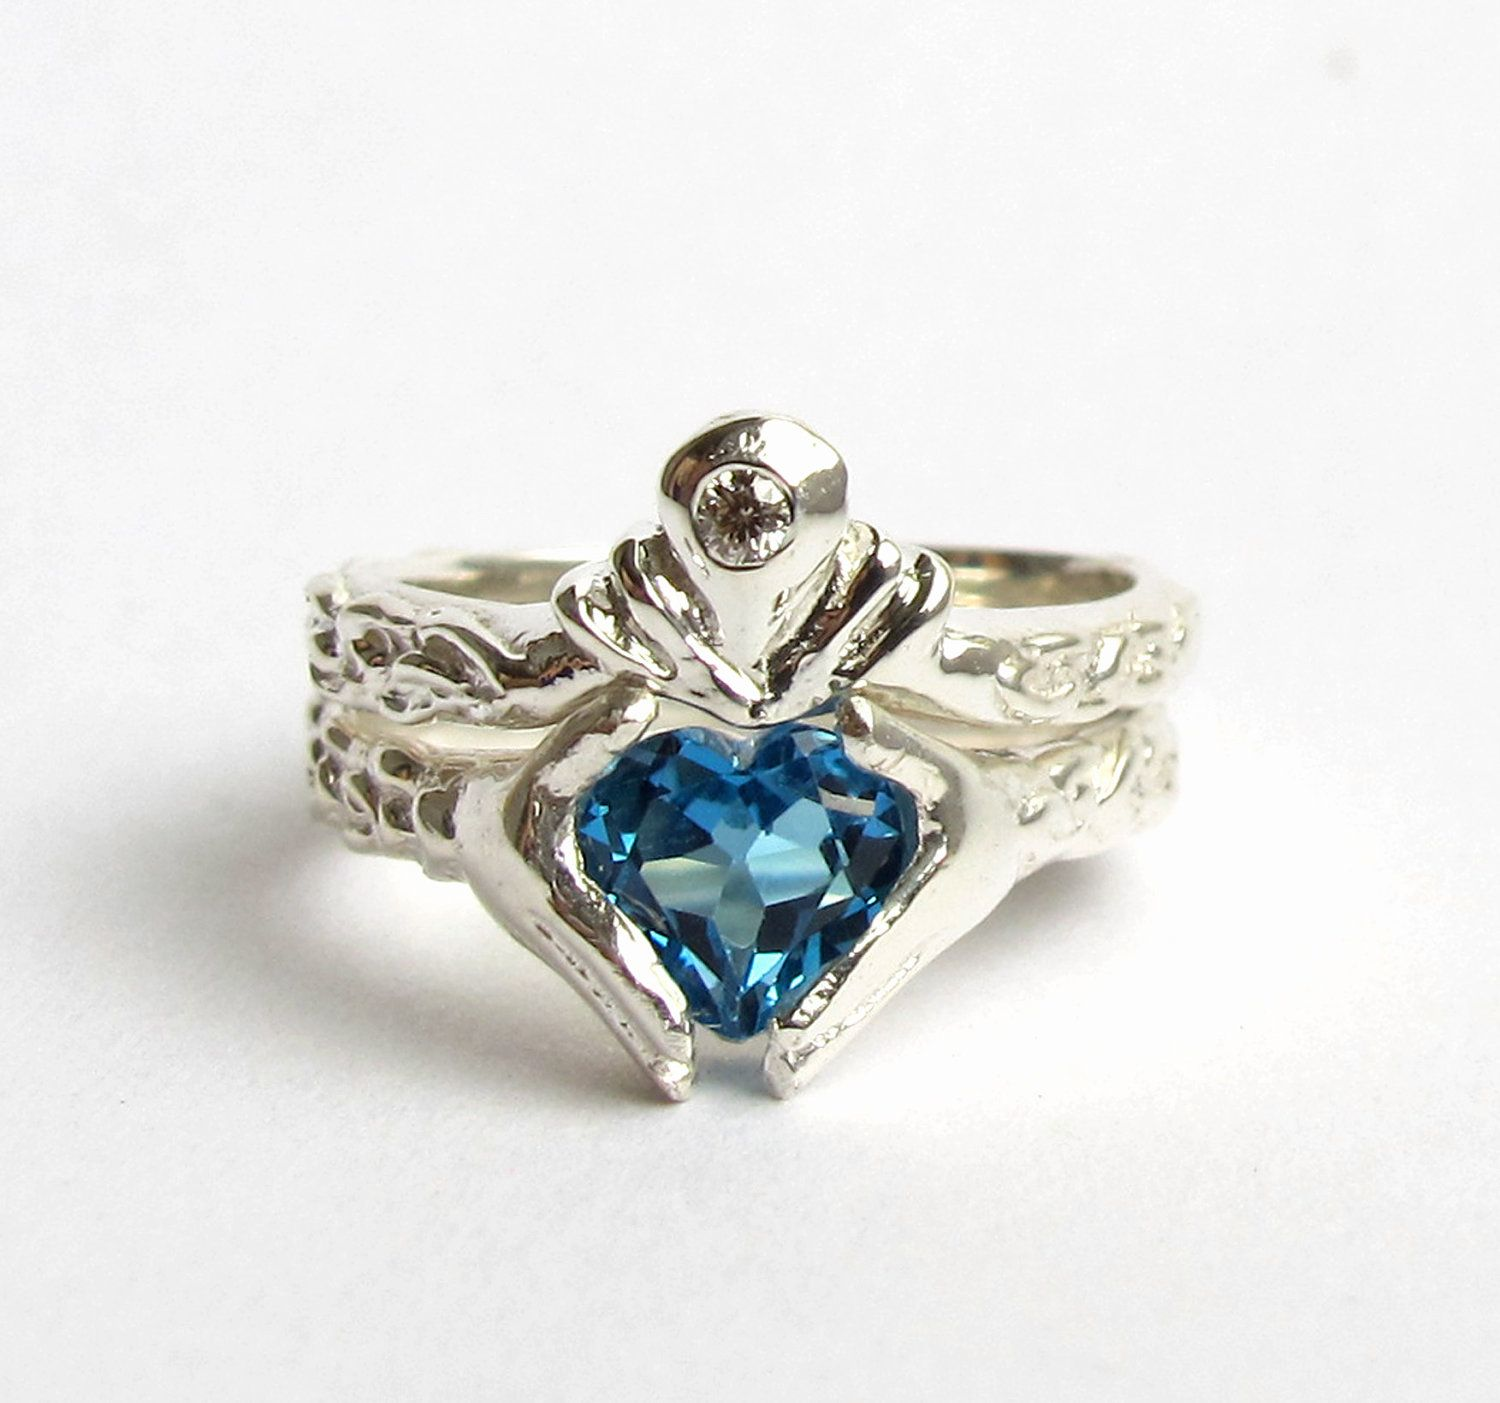 blue topaz wedding band Claddagh Ring Wedding Set White Gold and Diamond Blue Topaz or Red Garnet Engagement Ring and Wedding Band Rickson